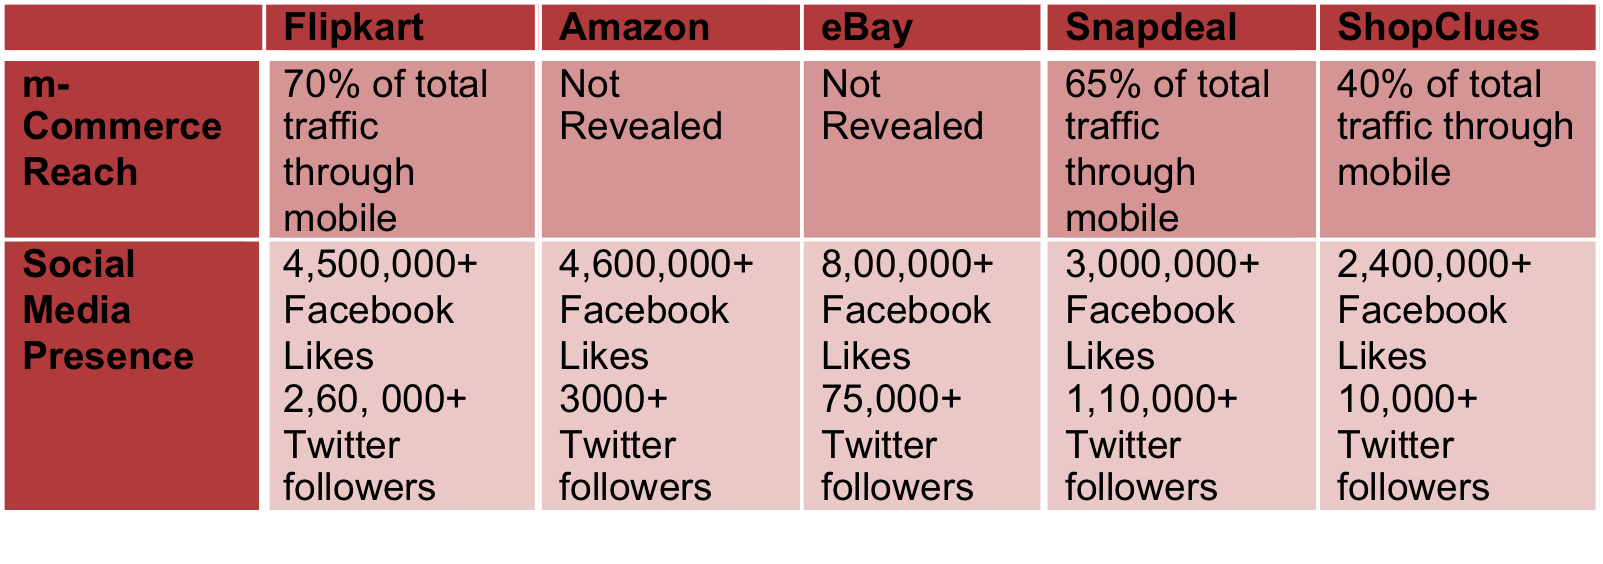 ed8ef2e2d1e Flipkart seems to be running the game when it comes to social media  presence an m-commerce. With m-commerce slated to be the future of online  retail in ...